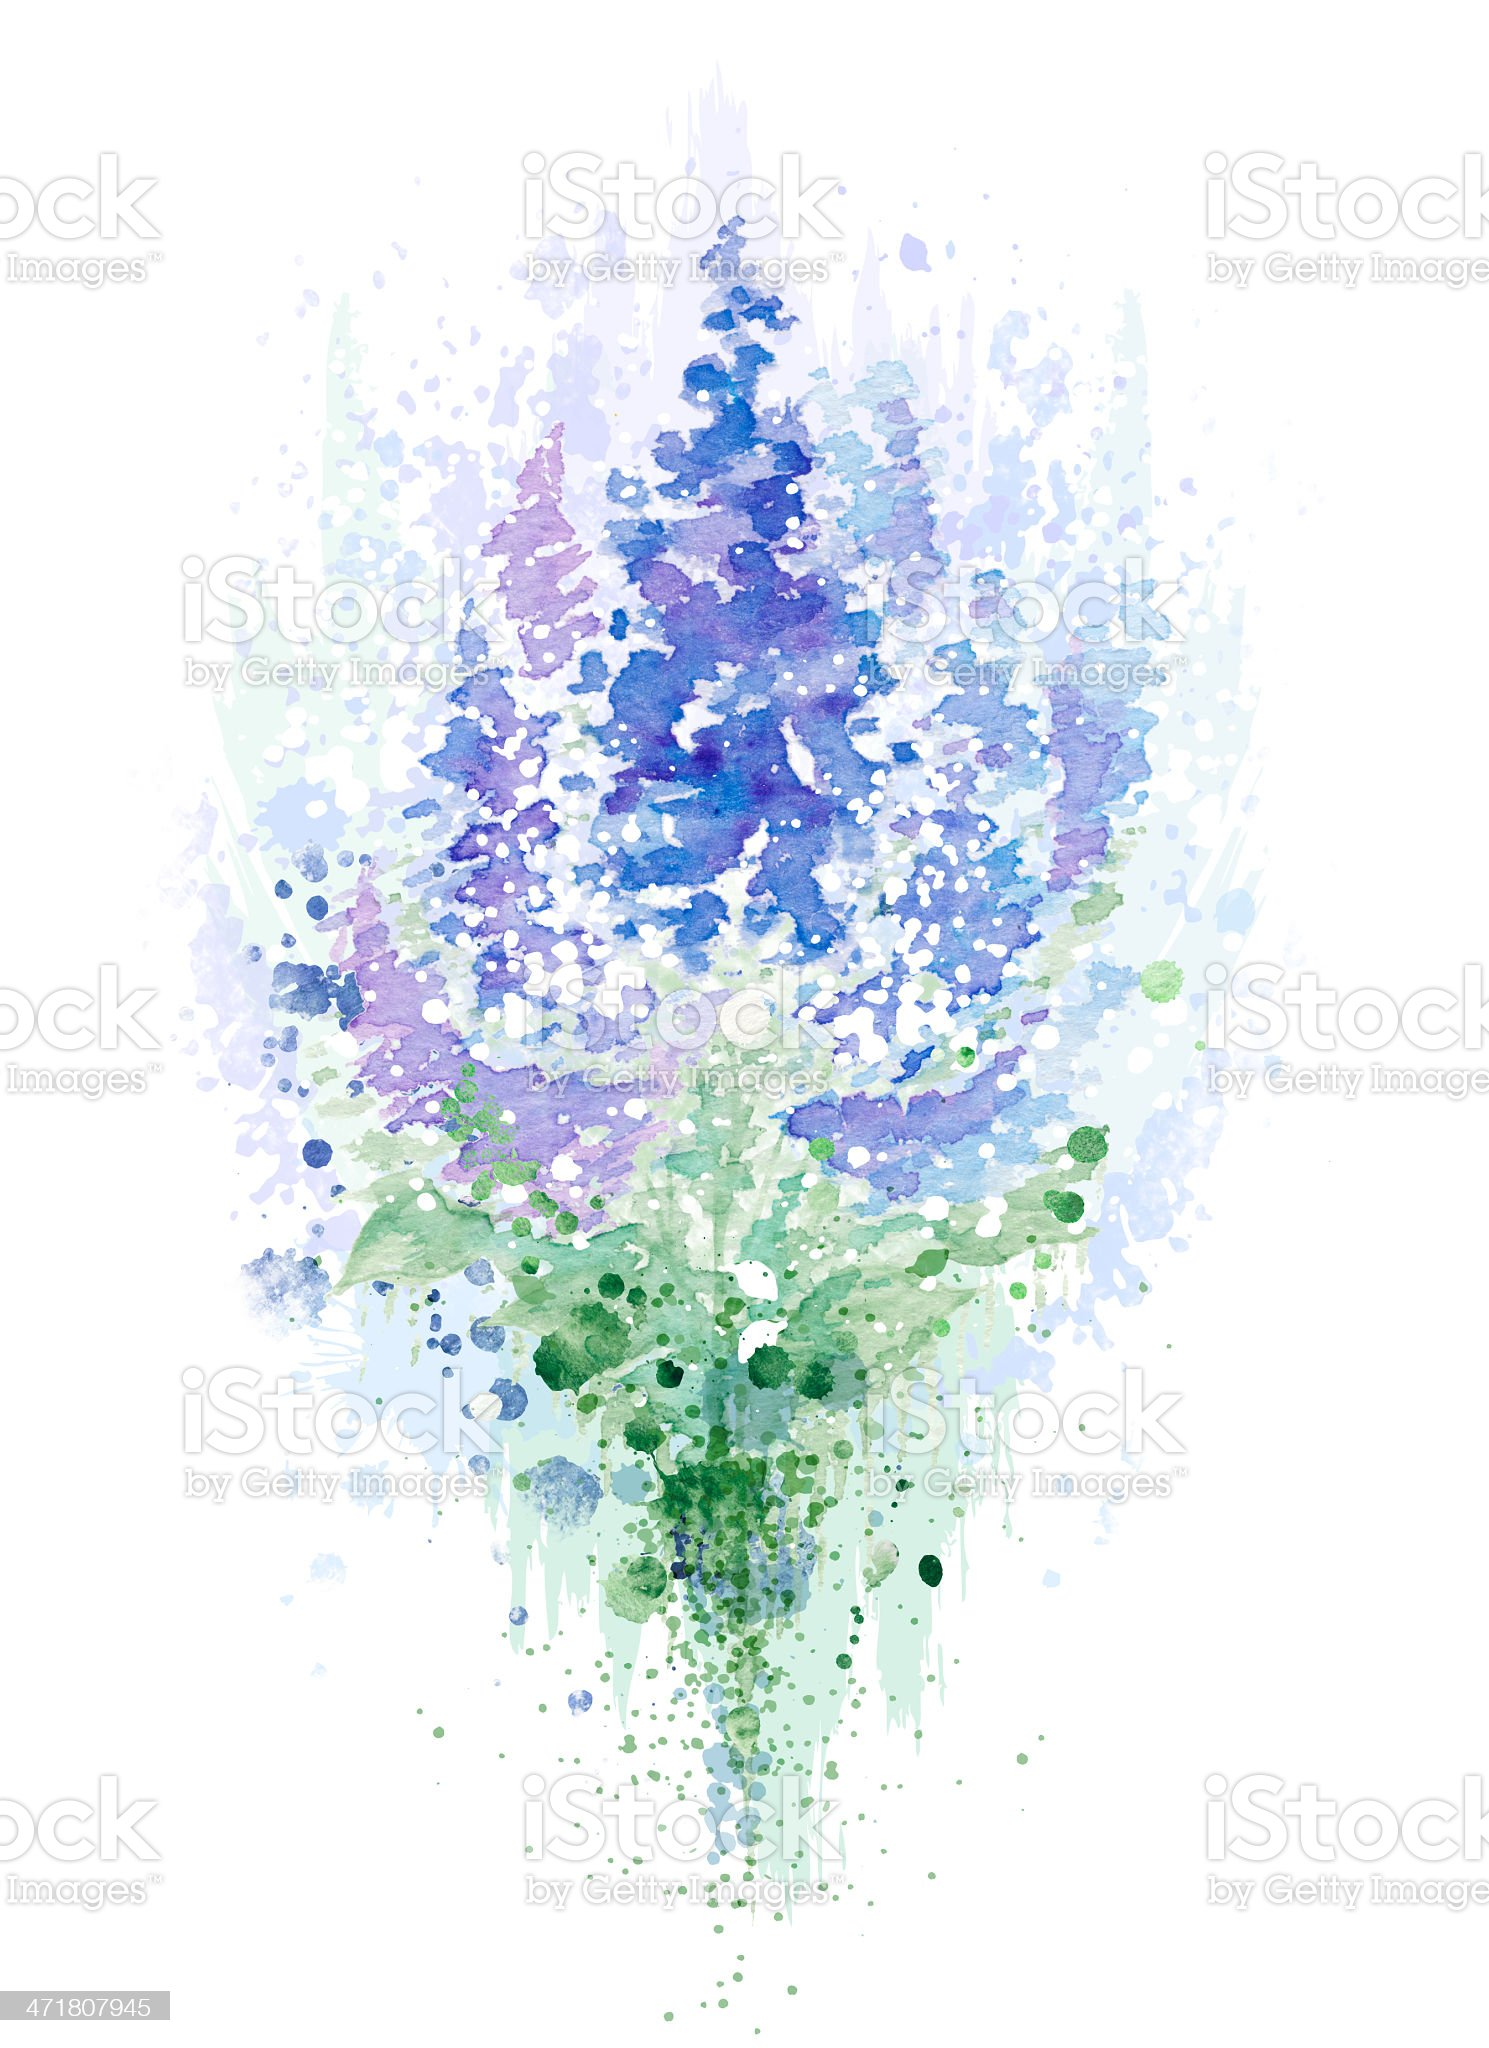 Watercolor lilac with grunge elements royalty-free stock vector art